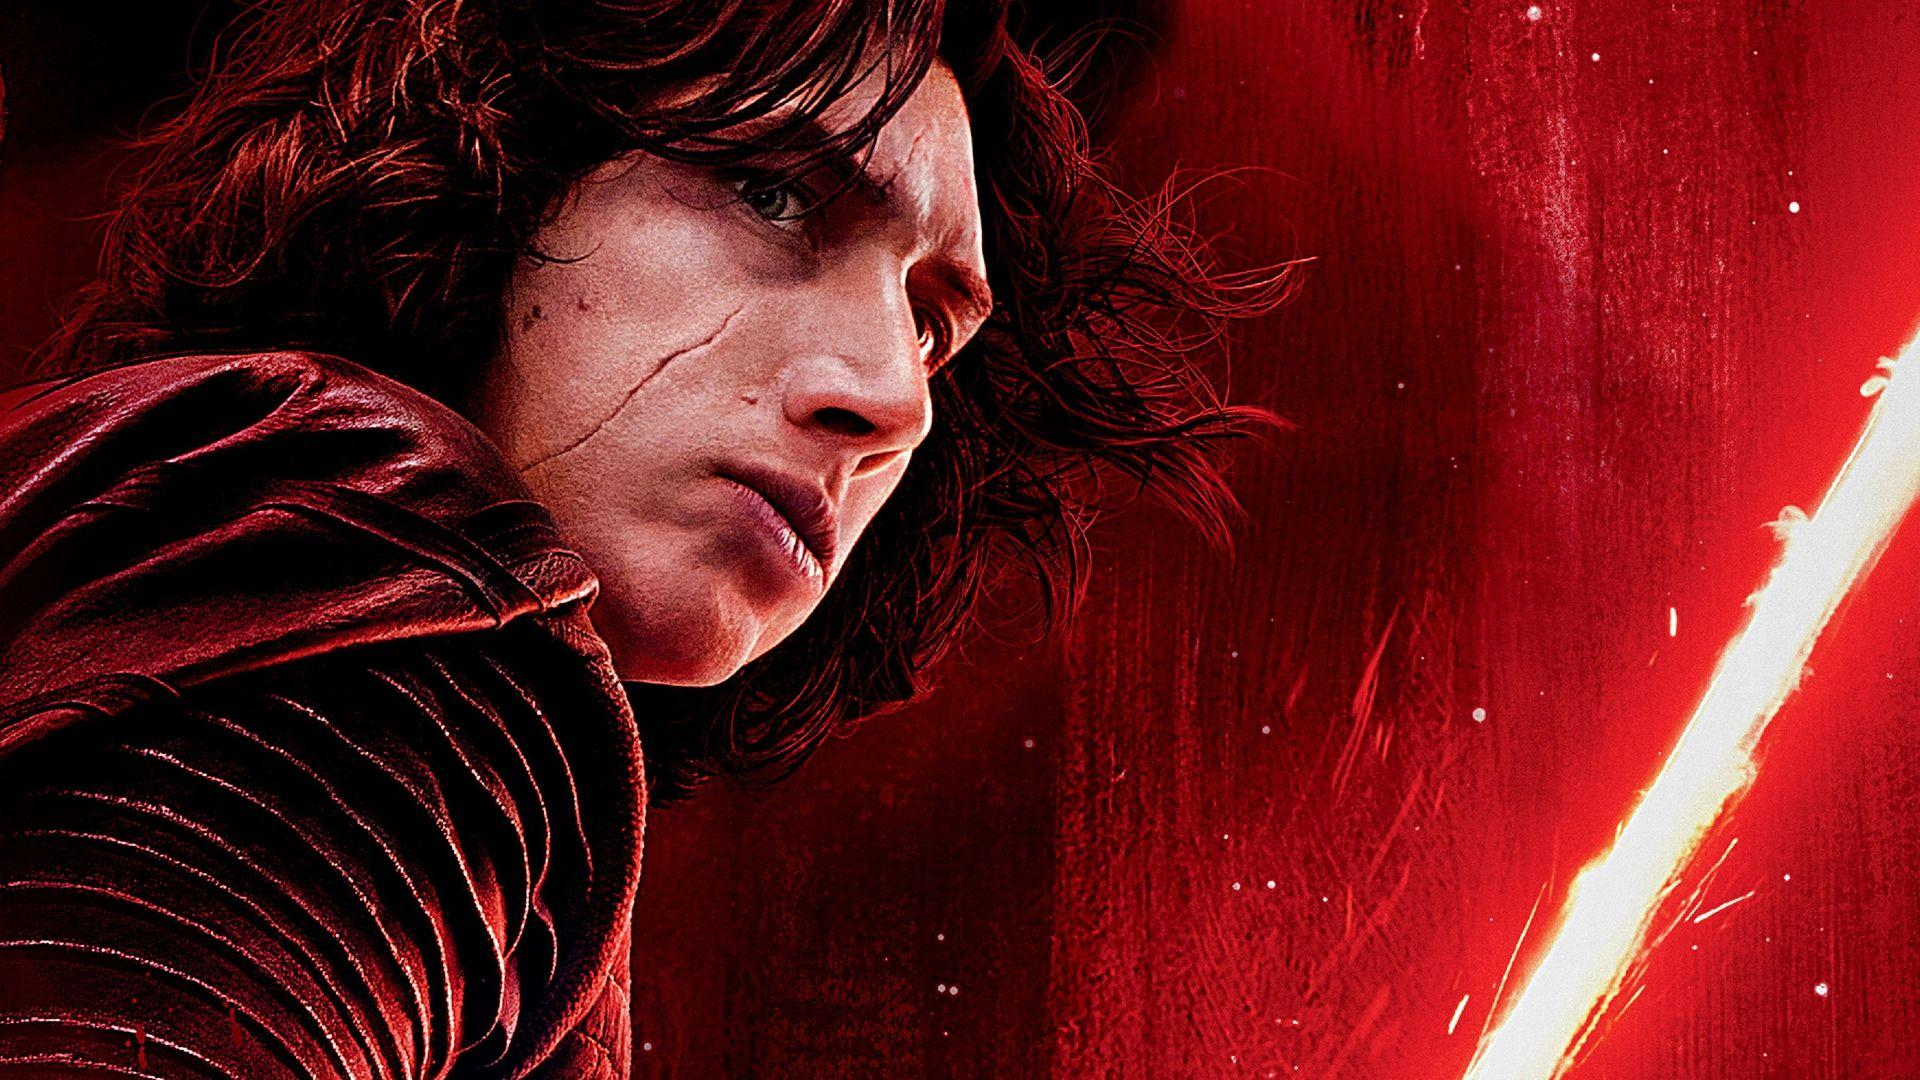 HD Kylo Ren Lightsaber Star Wars: The Last Jedi